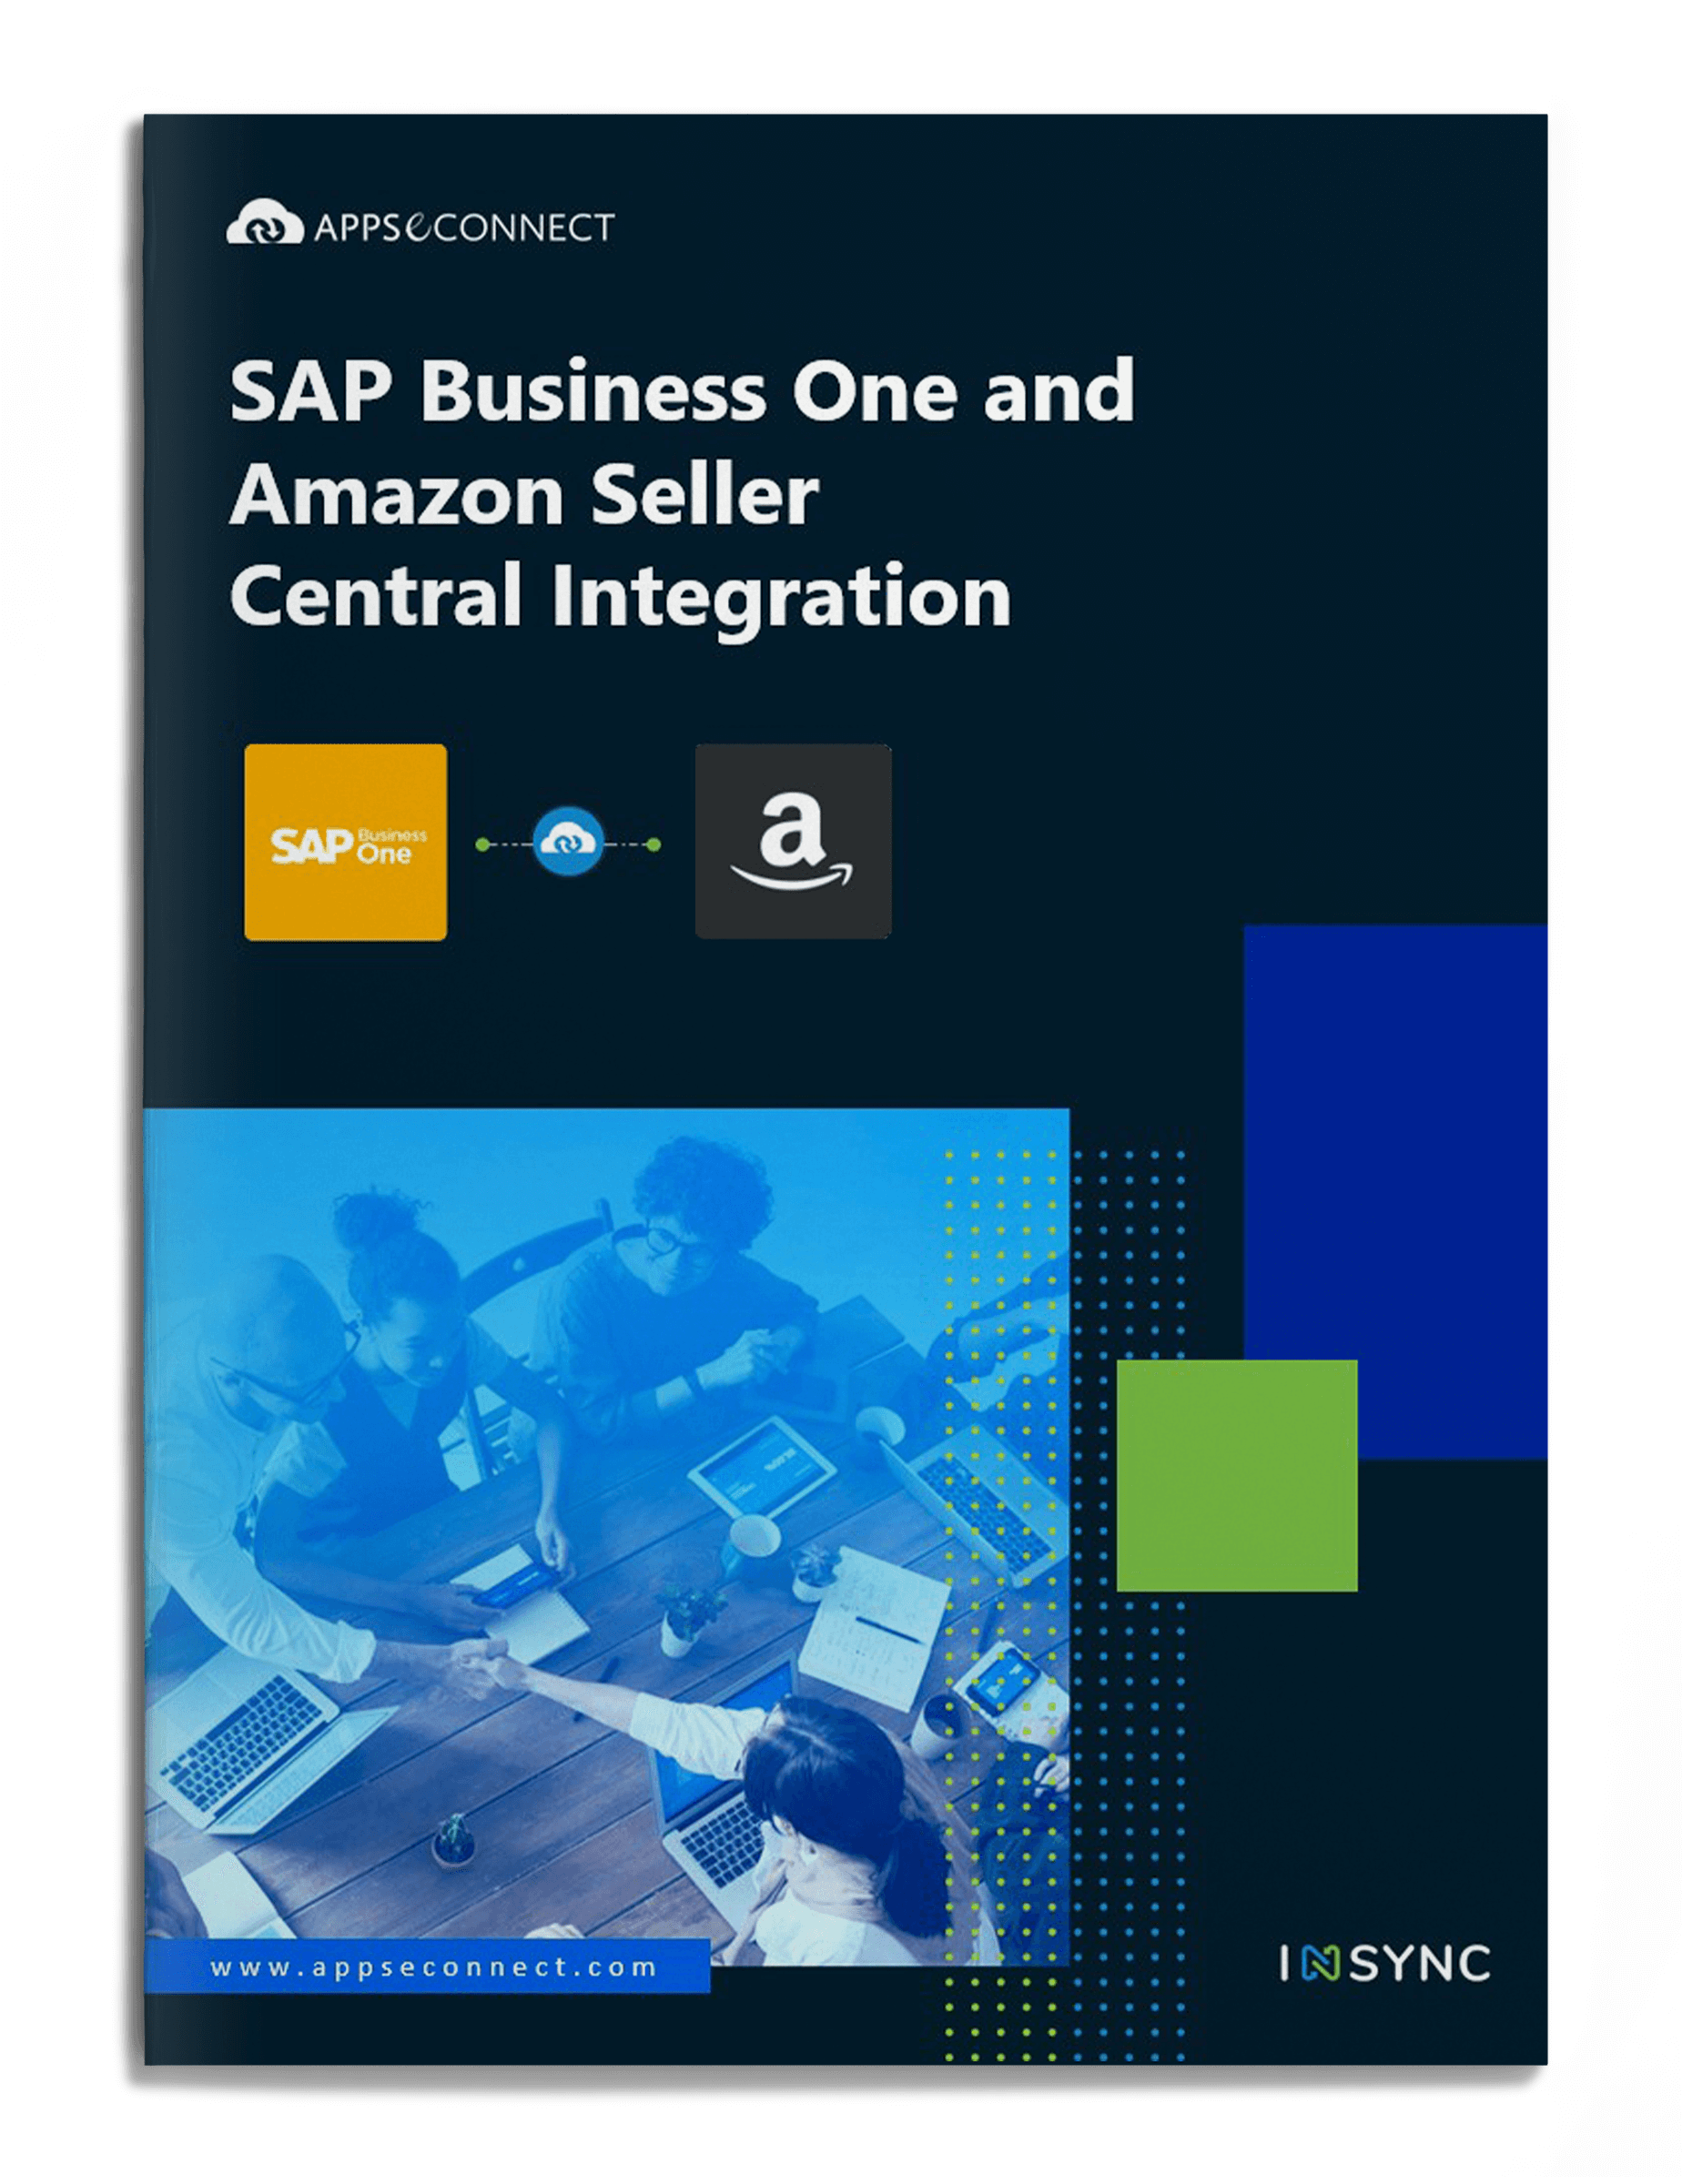 sap-business-one-amazon-seller-central-integration-brochure-cover